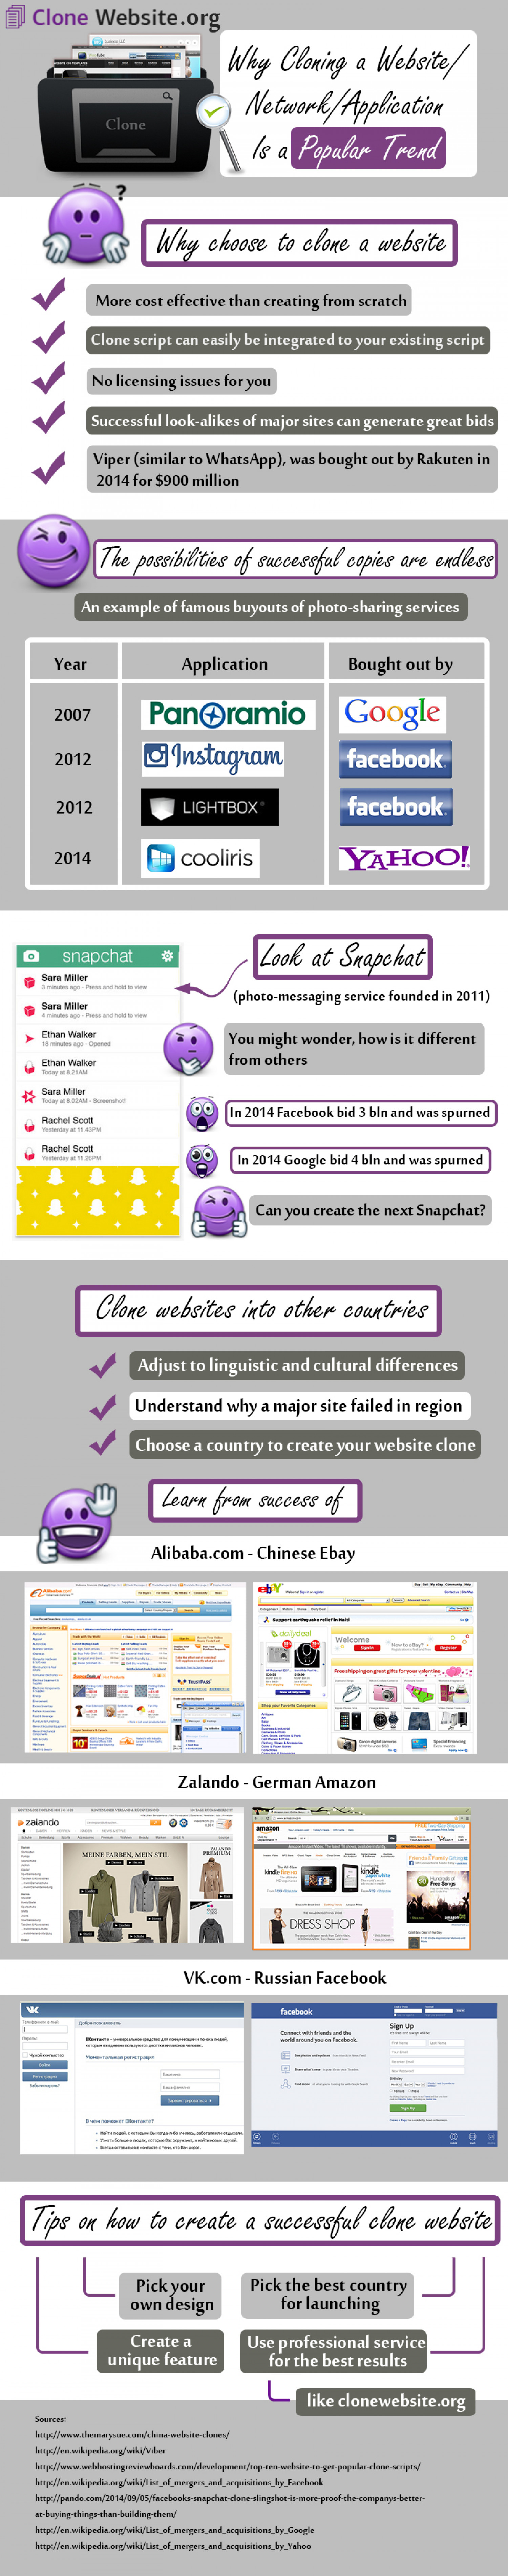 Why Cloning a Website/Network/Application Is a Popular Trend Infographic